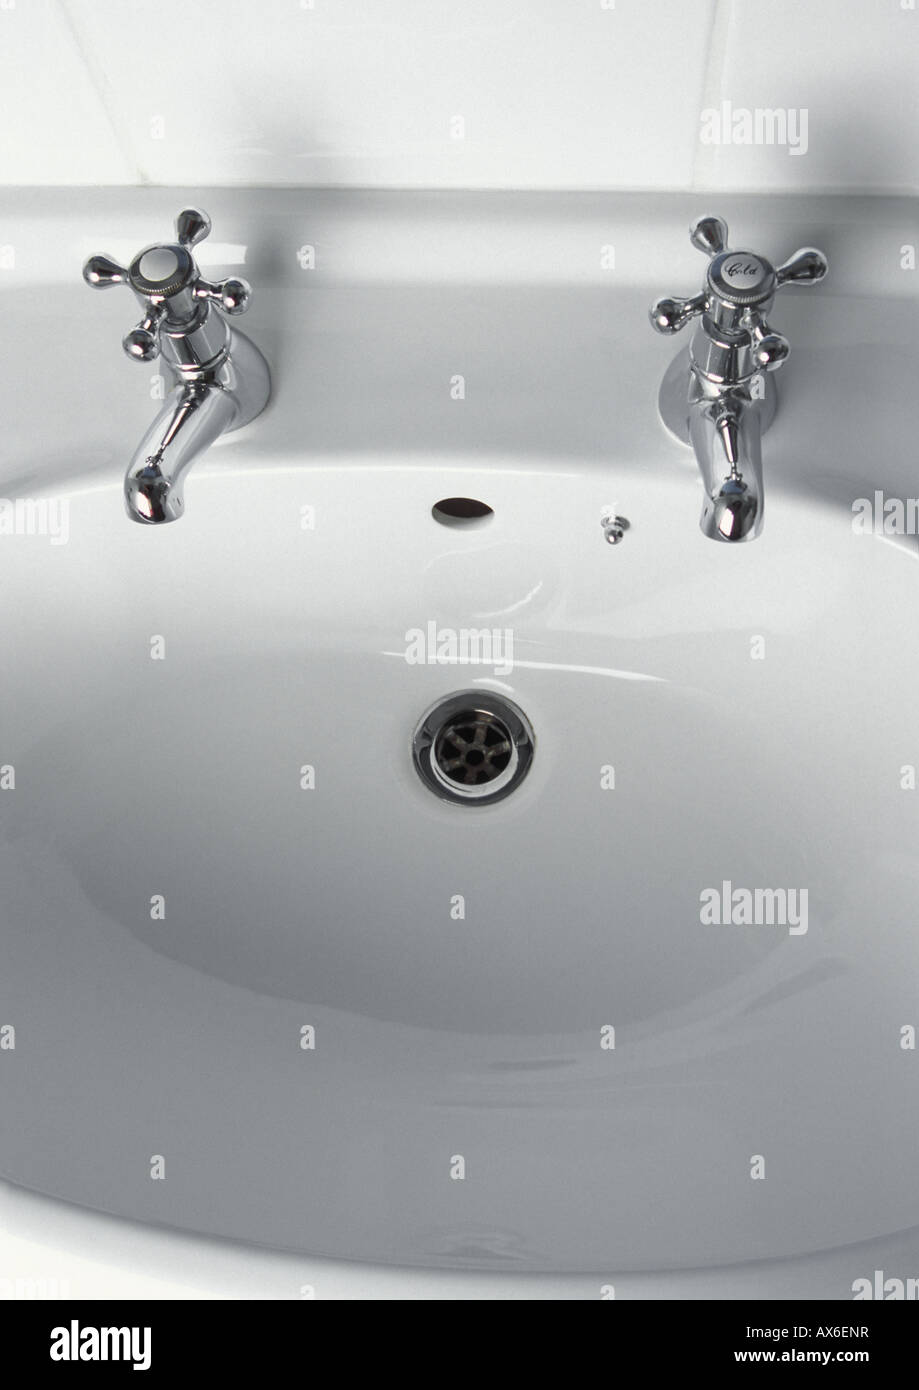 Traditional chrome taps on white bathroom sink basin - Stock Image